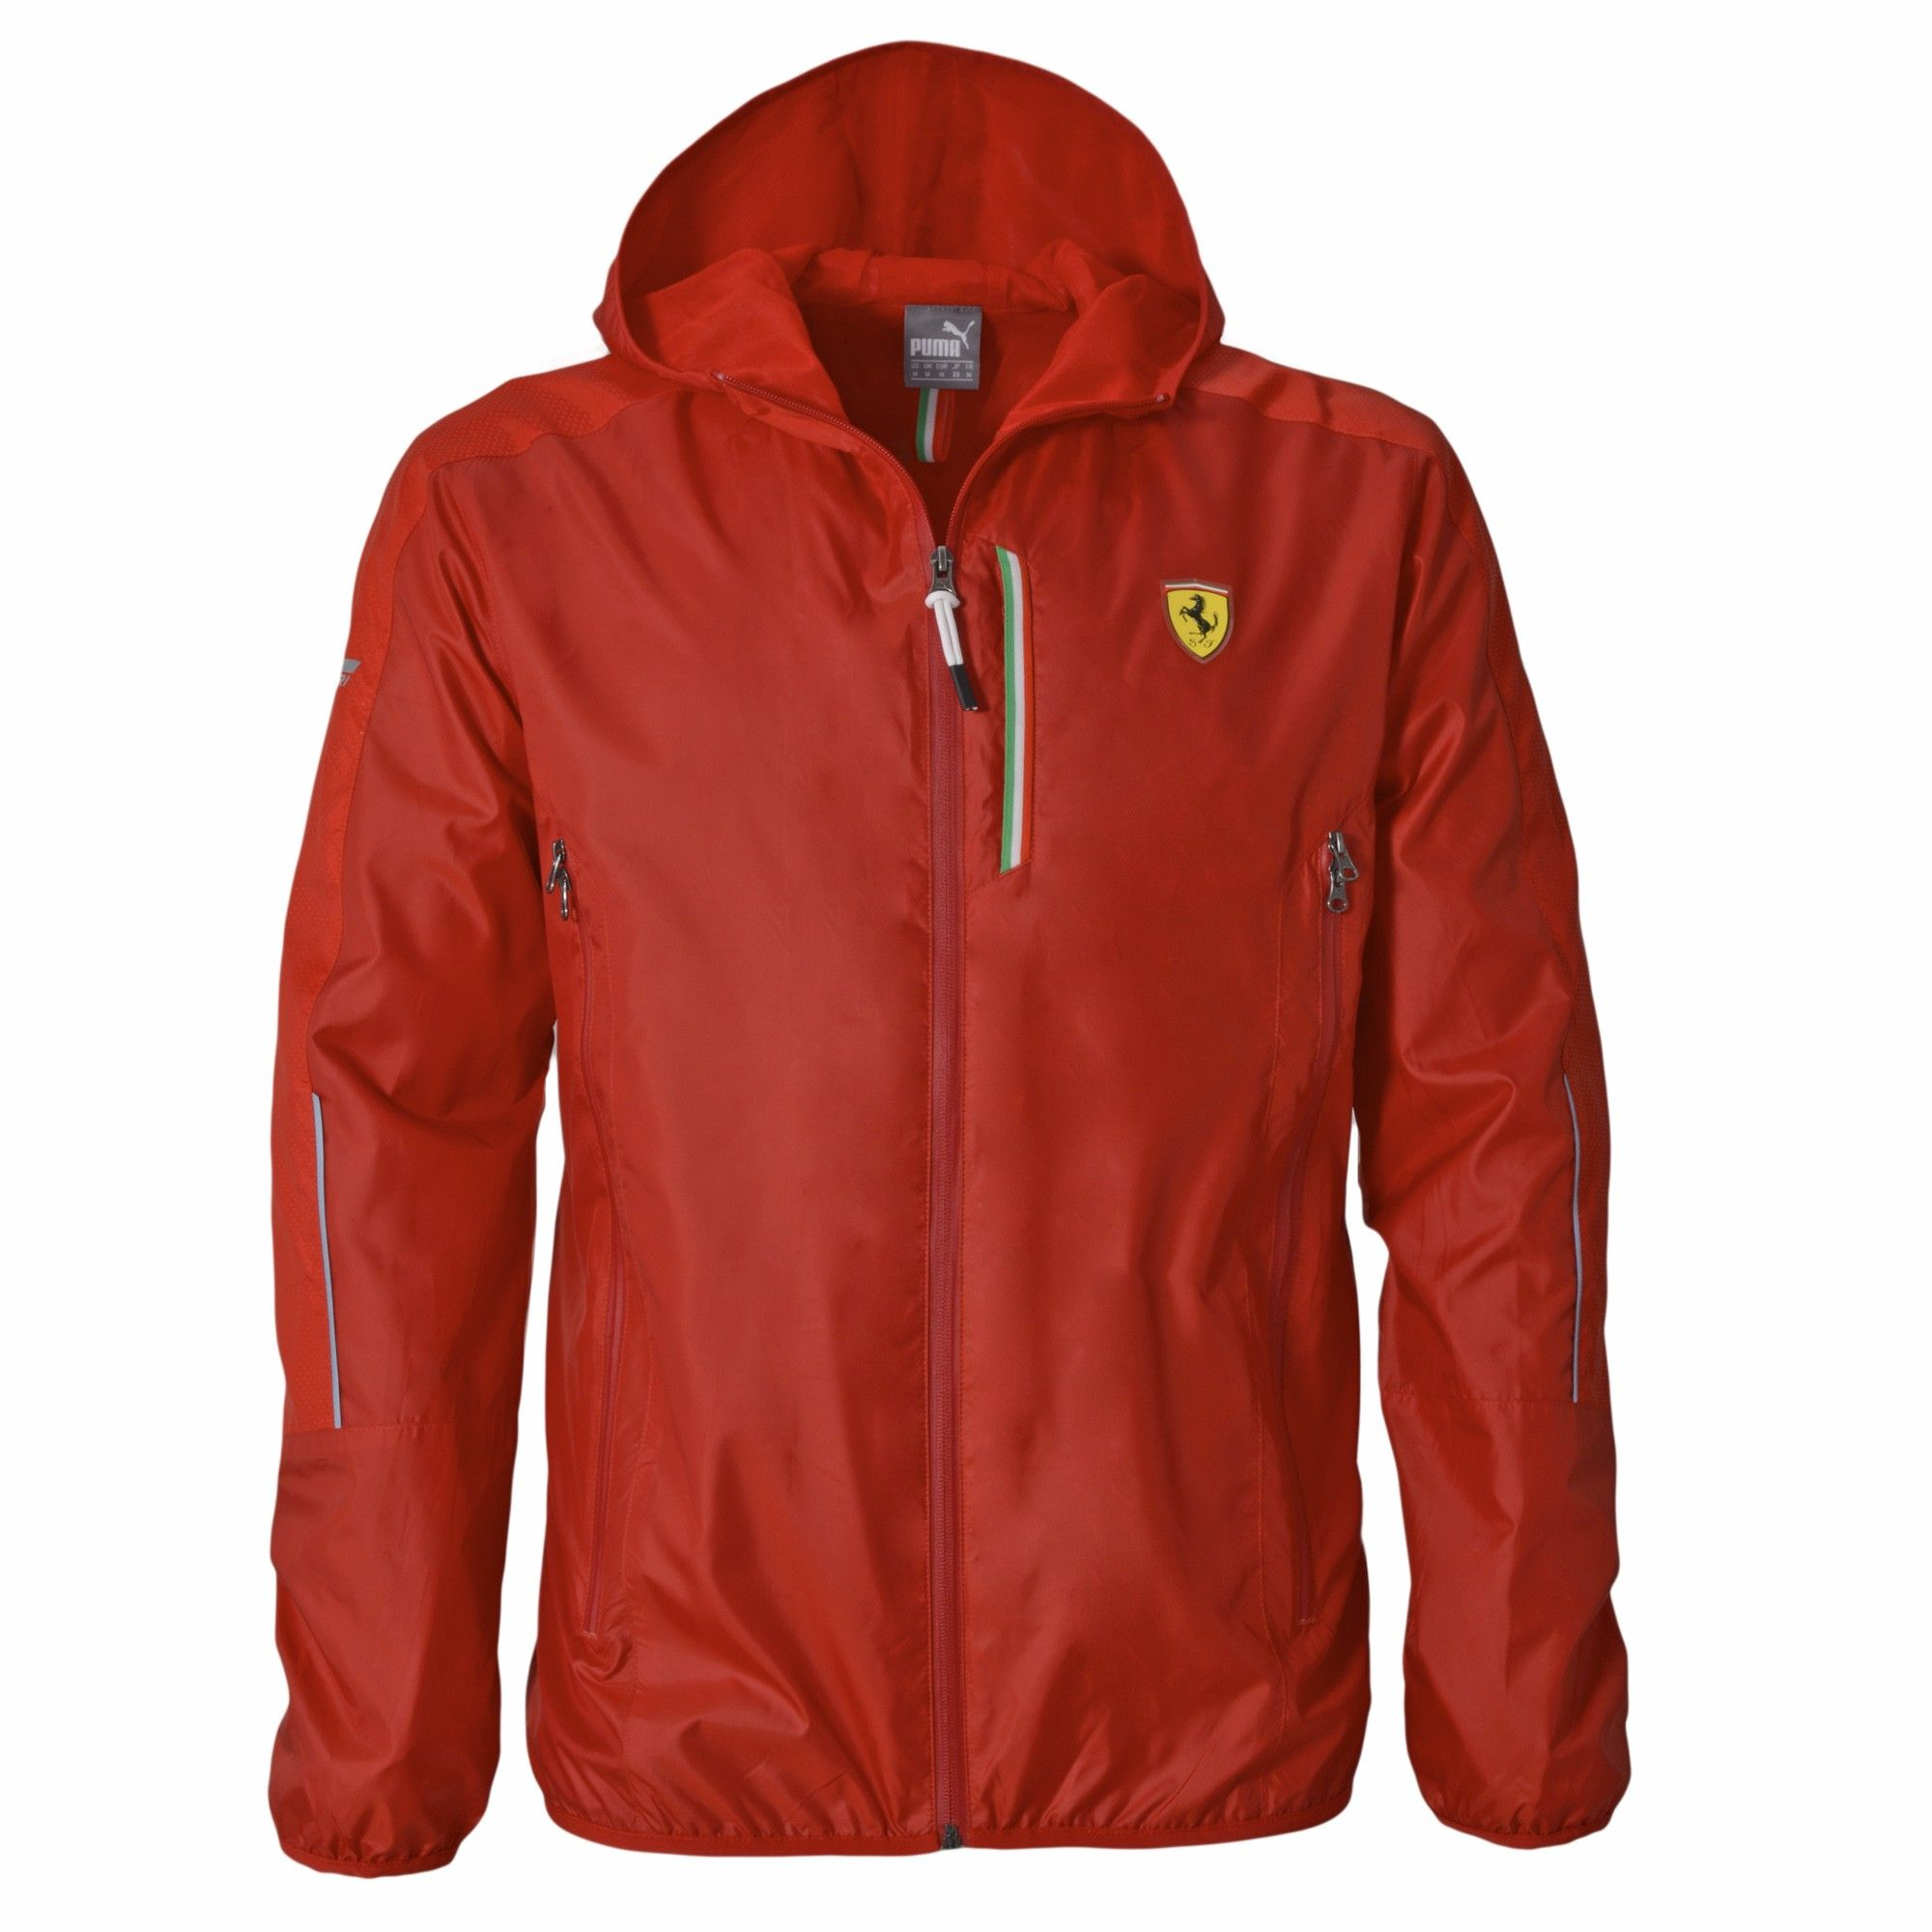 15fdd518633a63 Ferrari Store  Puma Scuderia Ferrari Lightweight Jacket. Shopping online  the official Ferrari Store and buy Puma Scuderia Ferrari Lightweight Jacket  safely ...